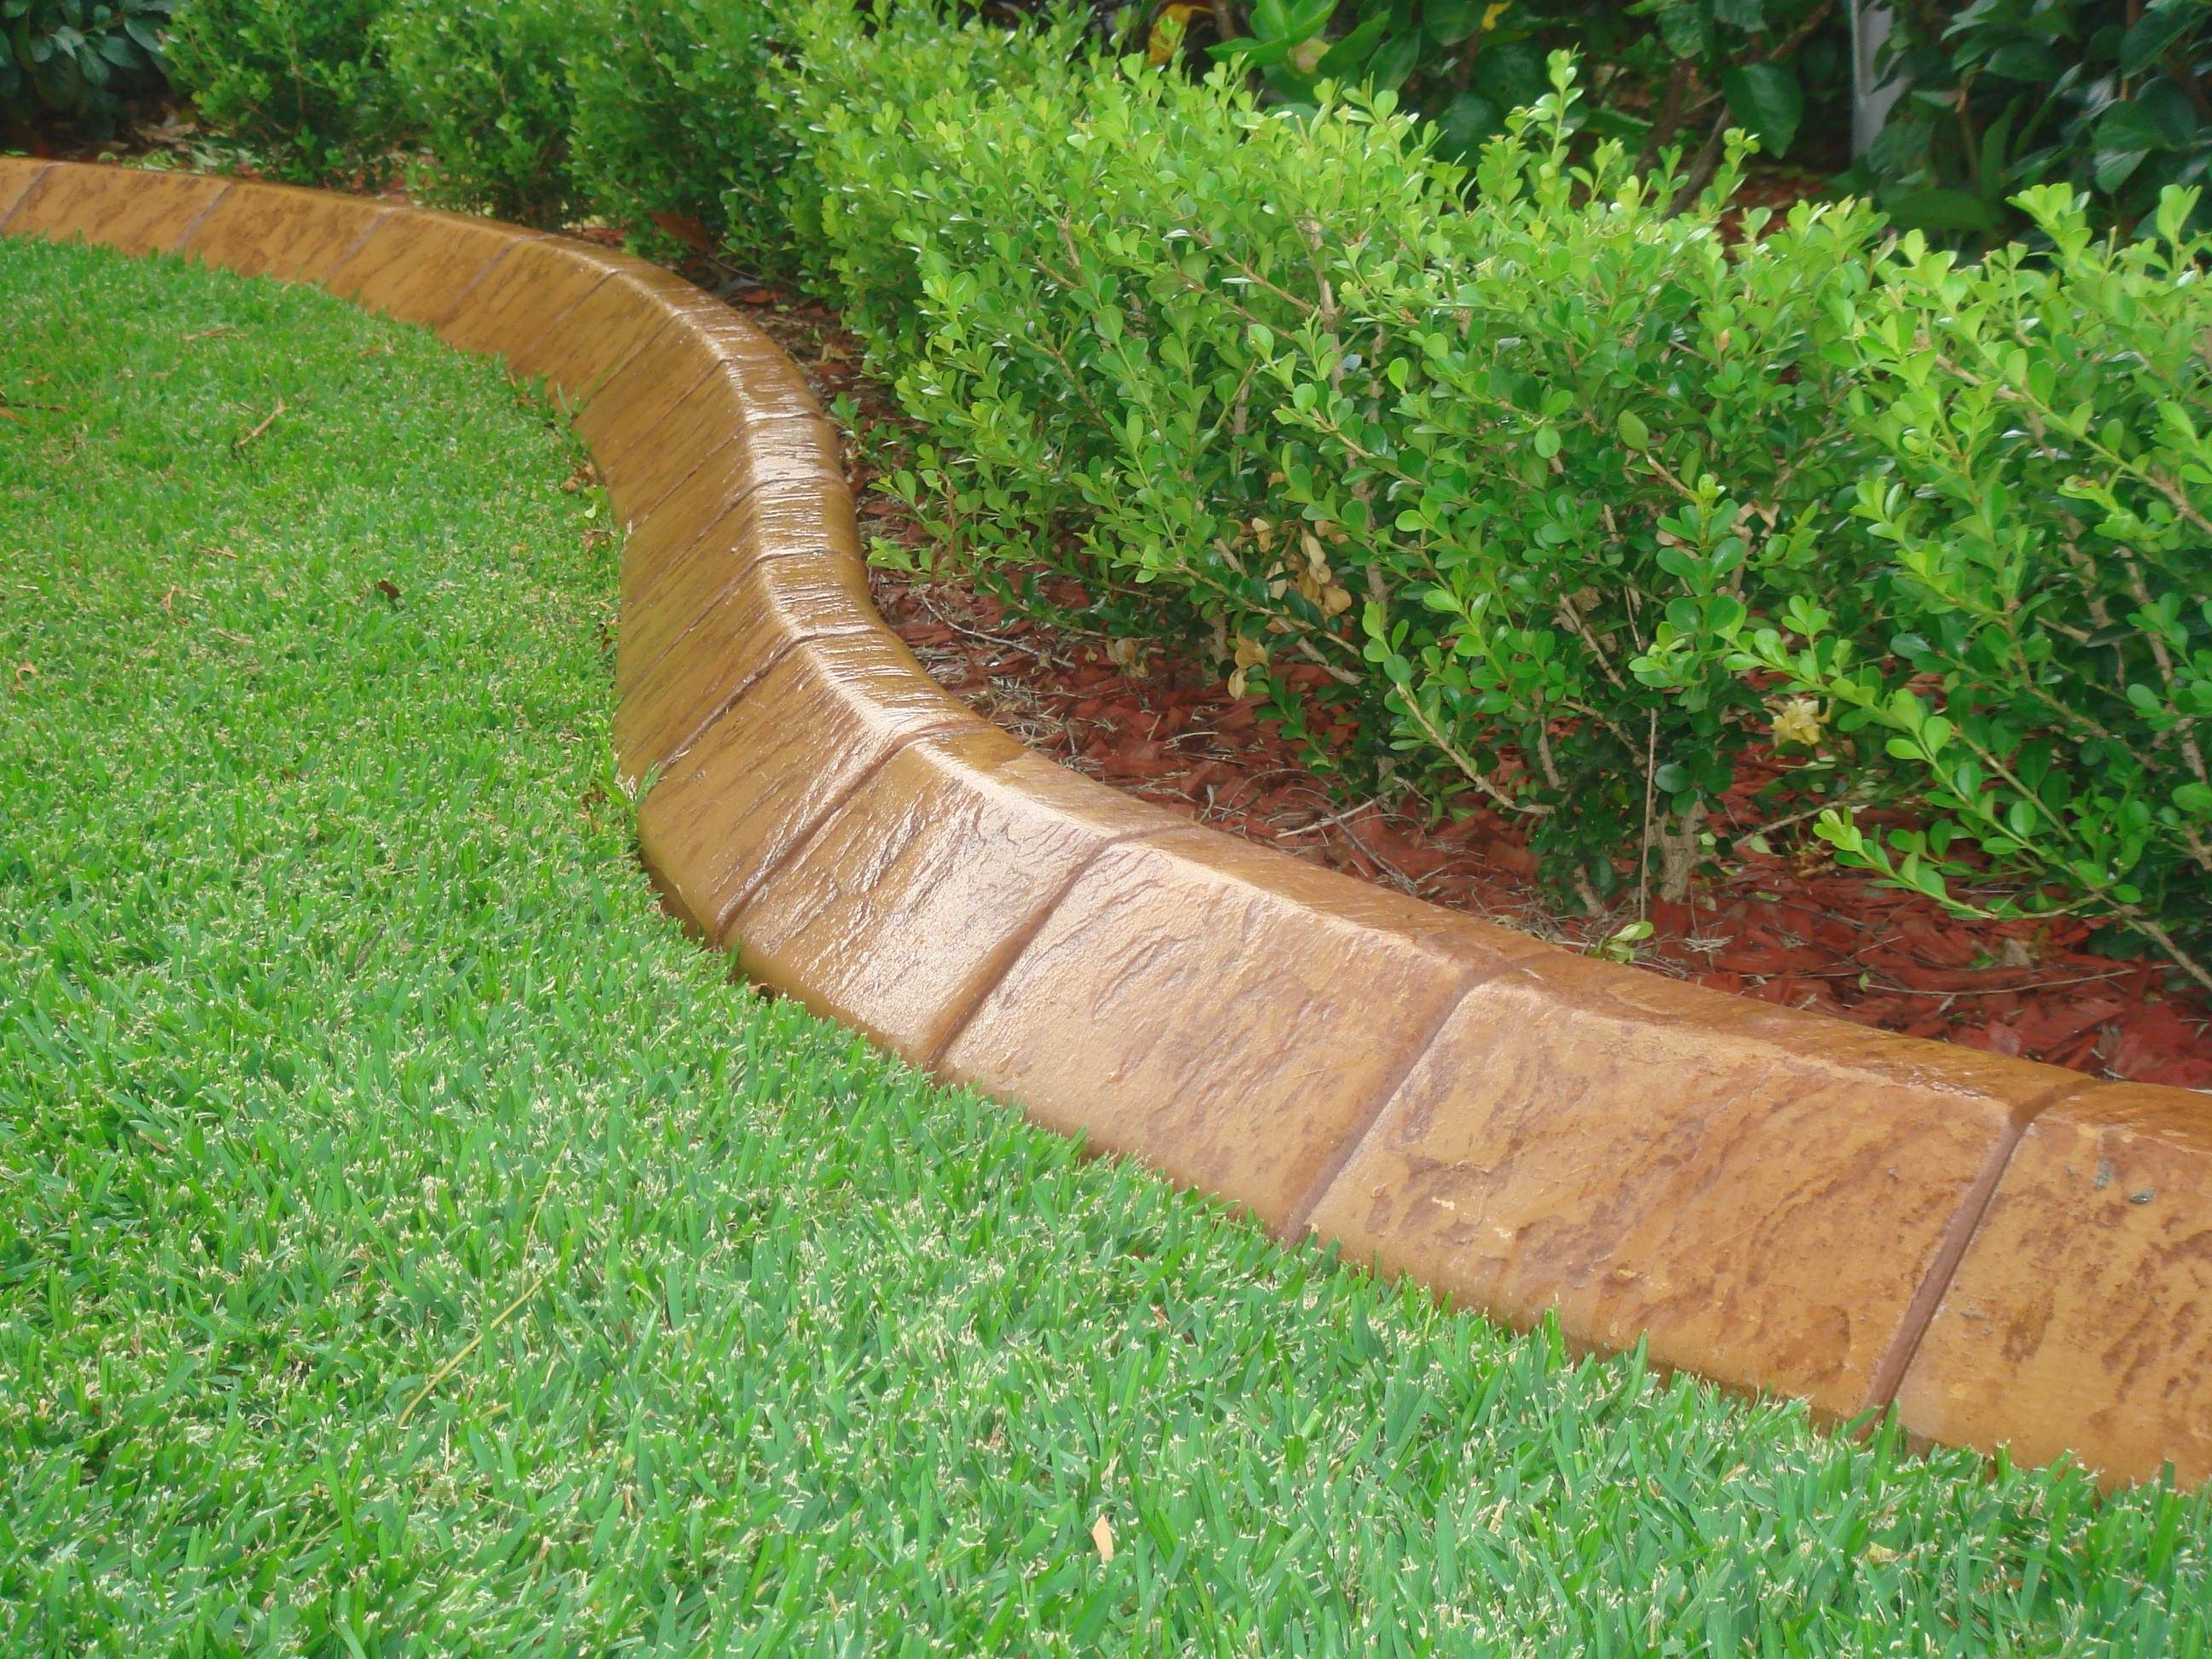 Garden edging wire edging barrier edging at bunnings for Cheap easy landscape edging